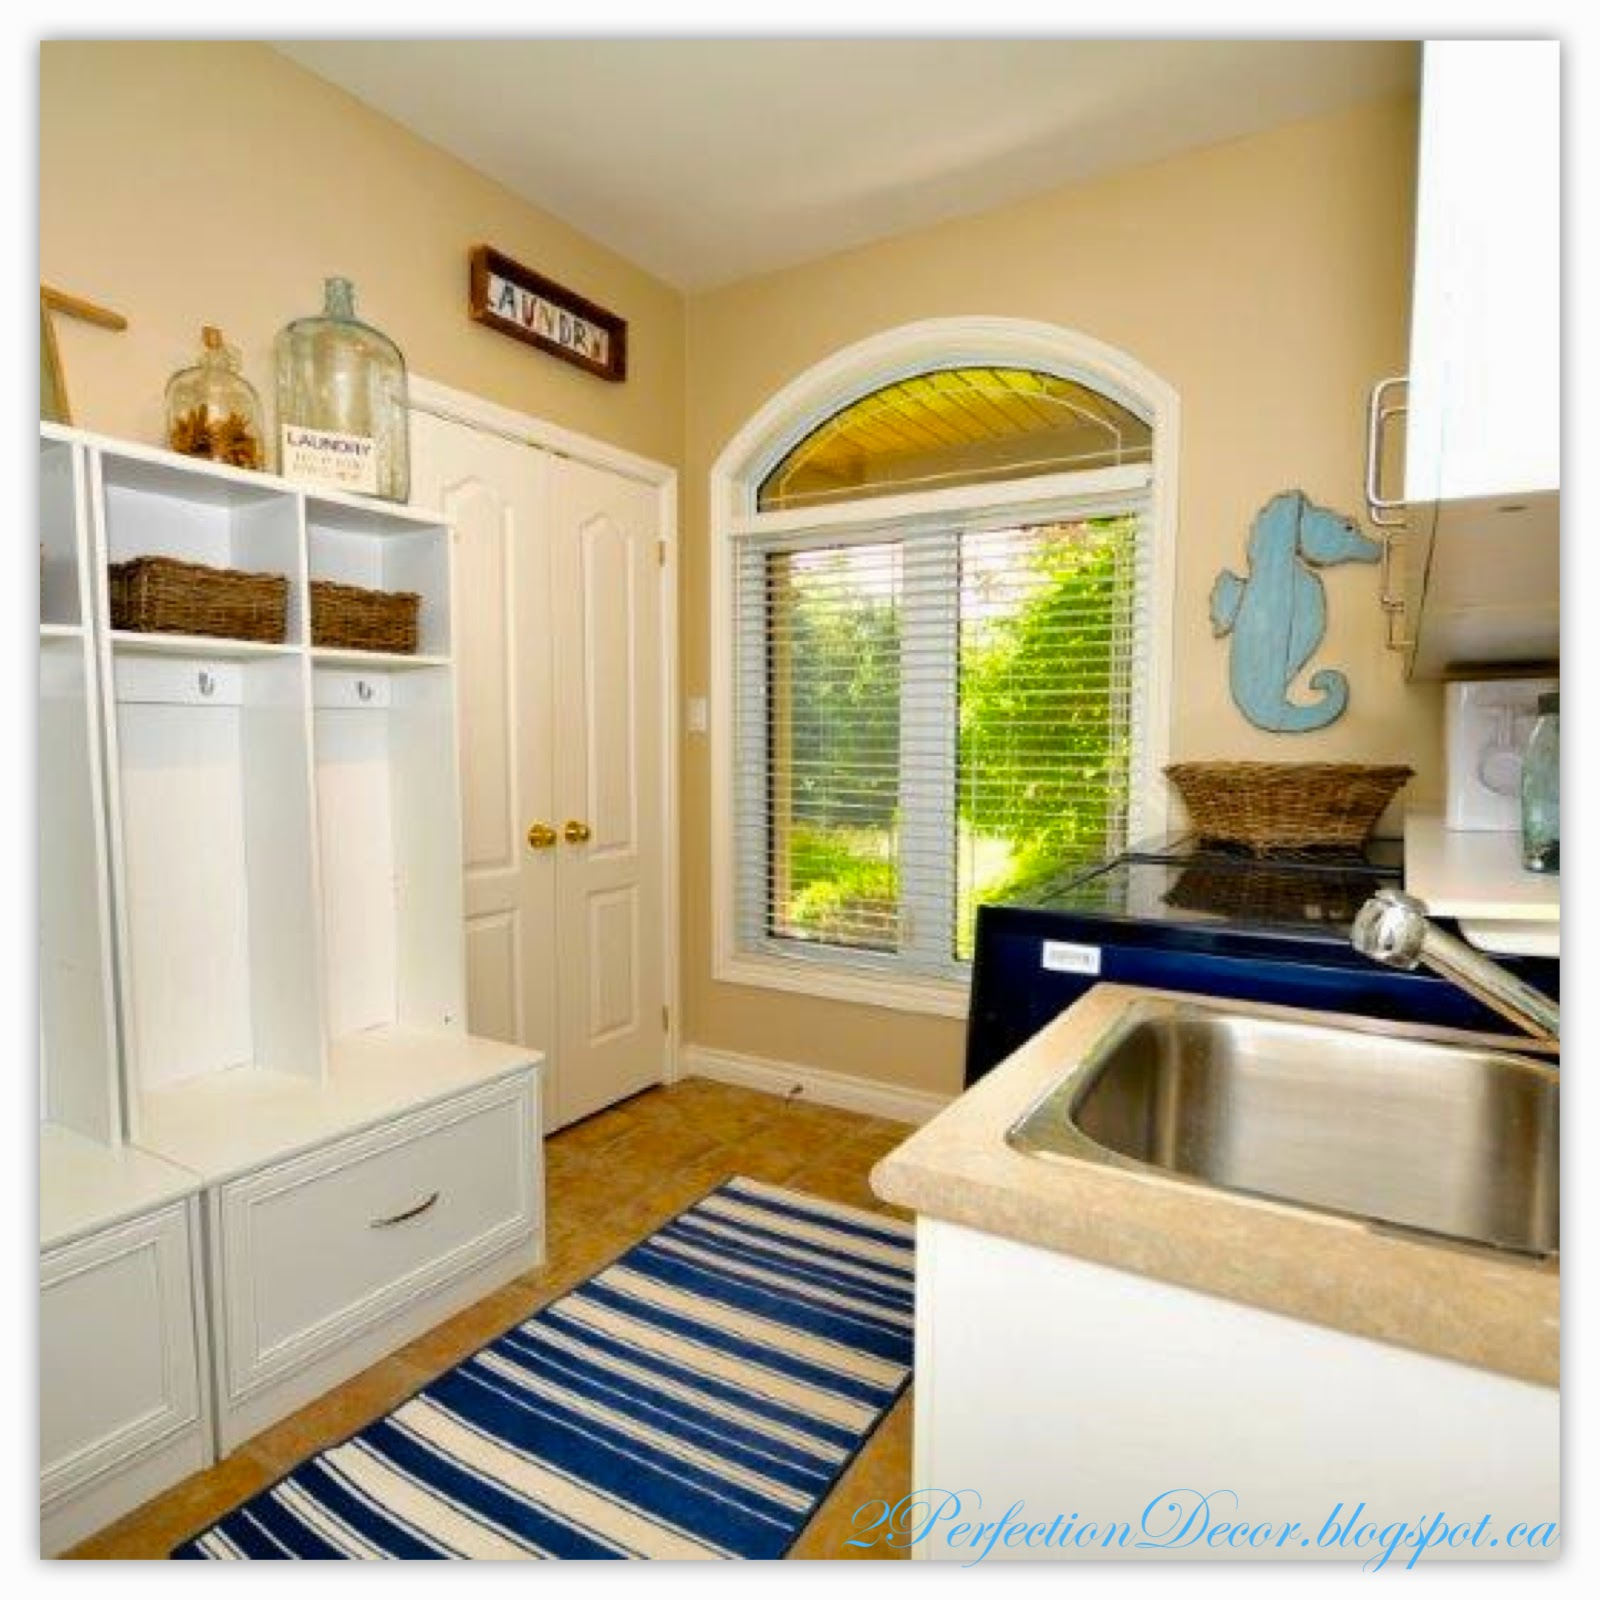 2Perfection Decor: Nautical Inspired Blue and white Laundry ...